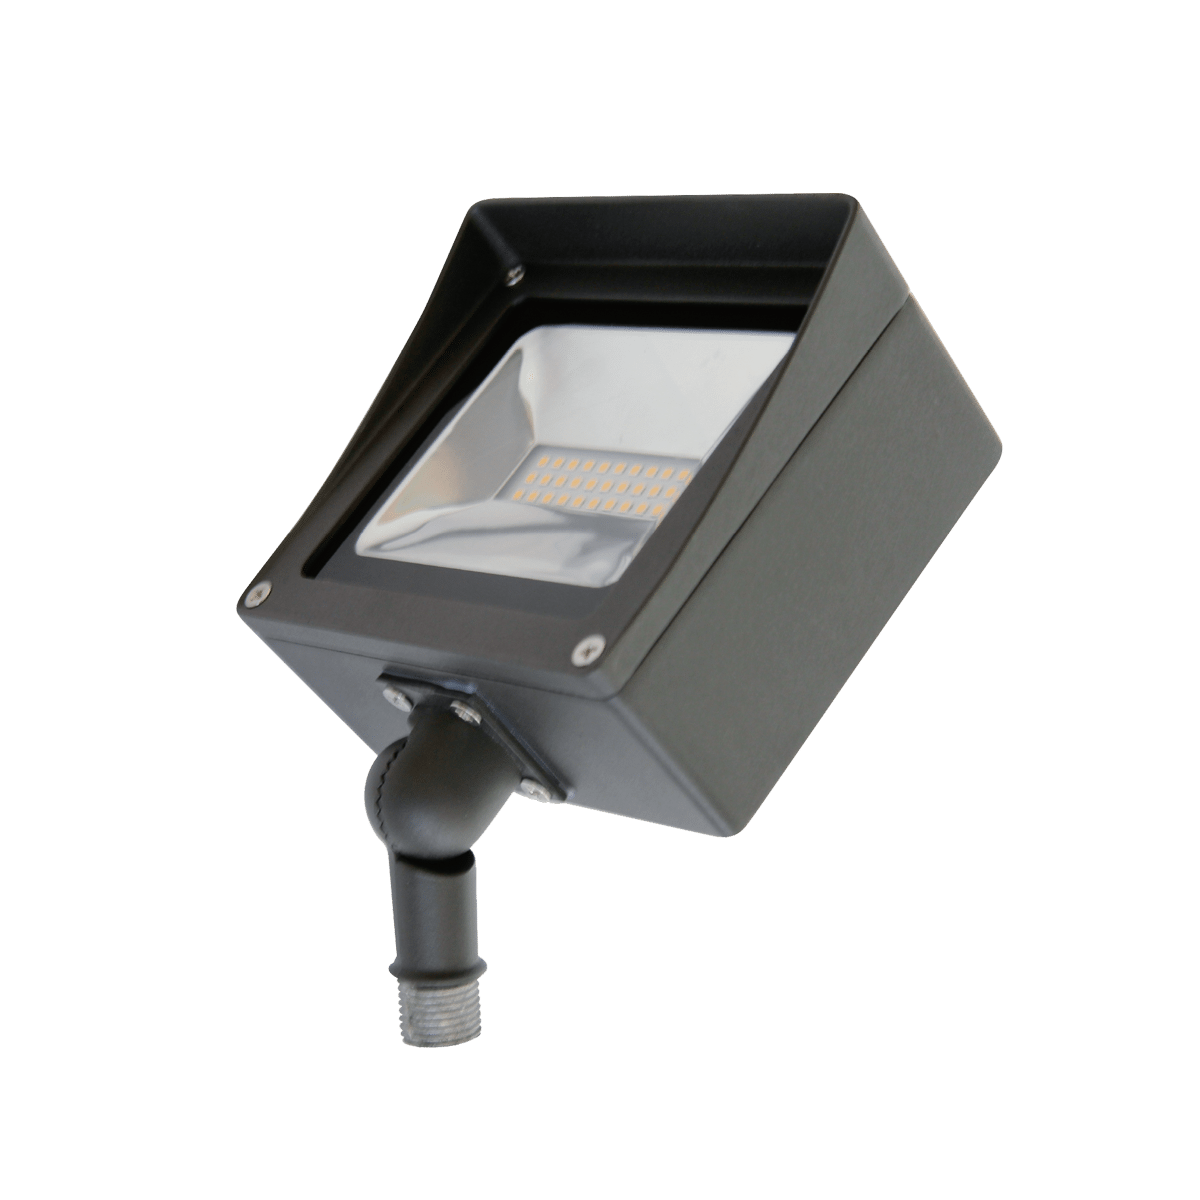 Led Compact Flood Light 30w Knuckle Mount Premise Led Lighting Manufacturer Canada Usa